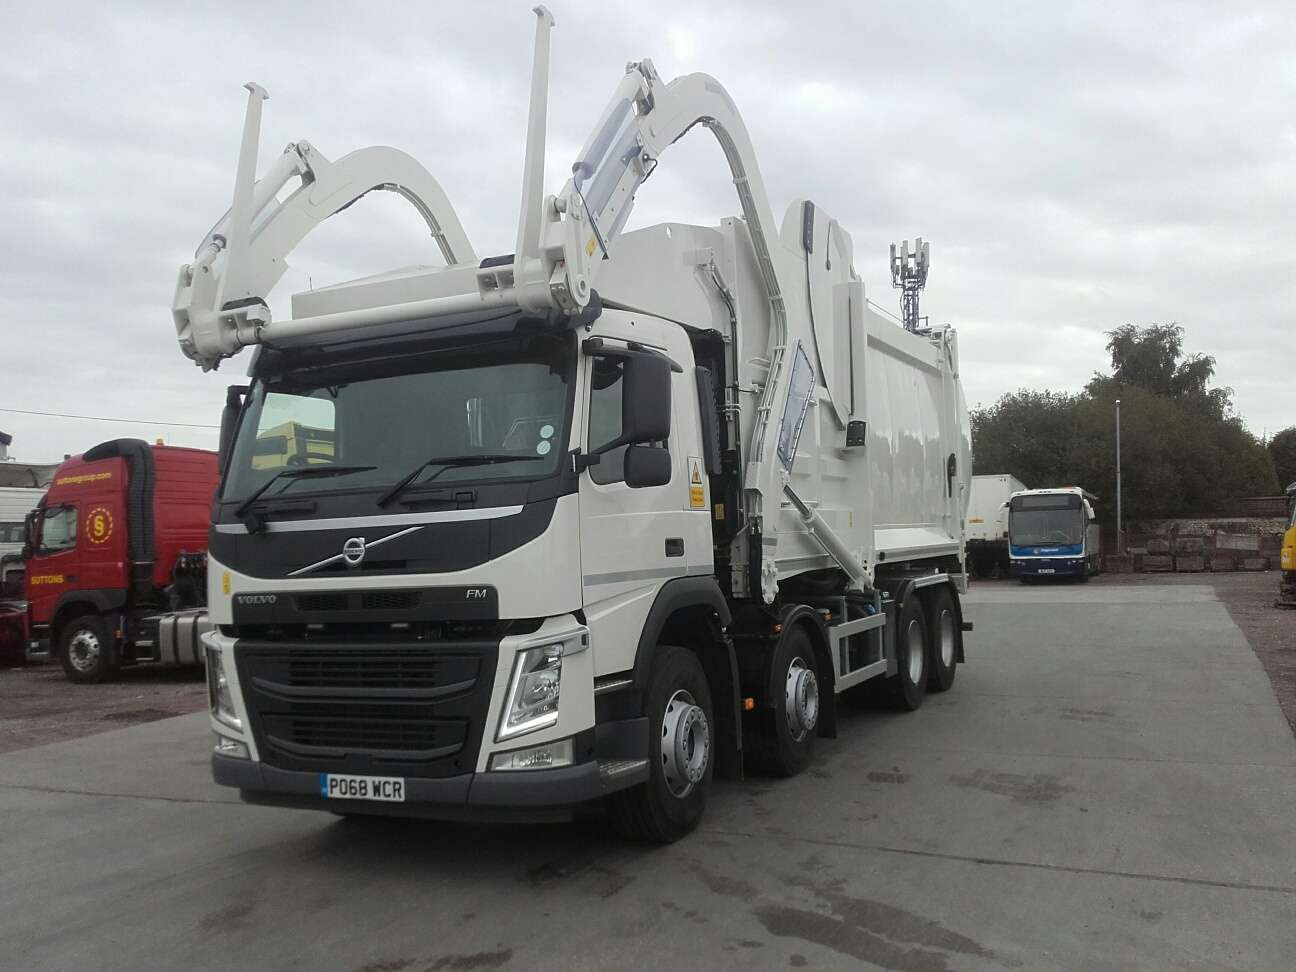 2018 Volvo FM 84 FR 8x4 front end loader for sale 3